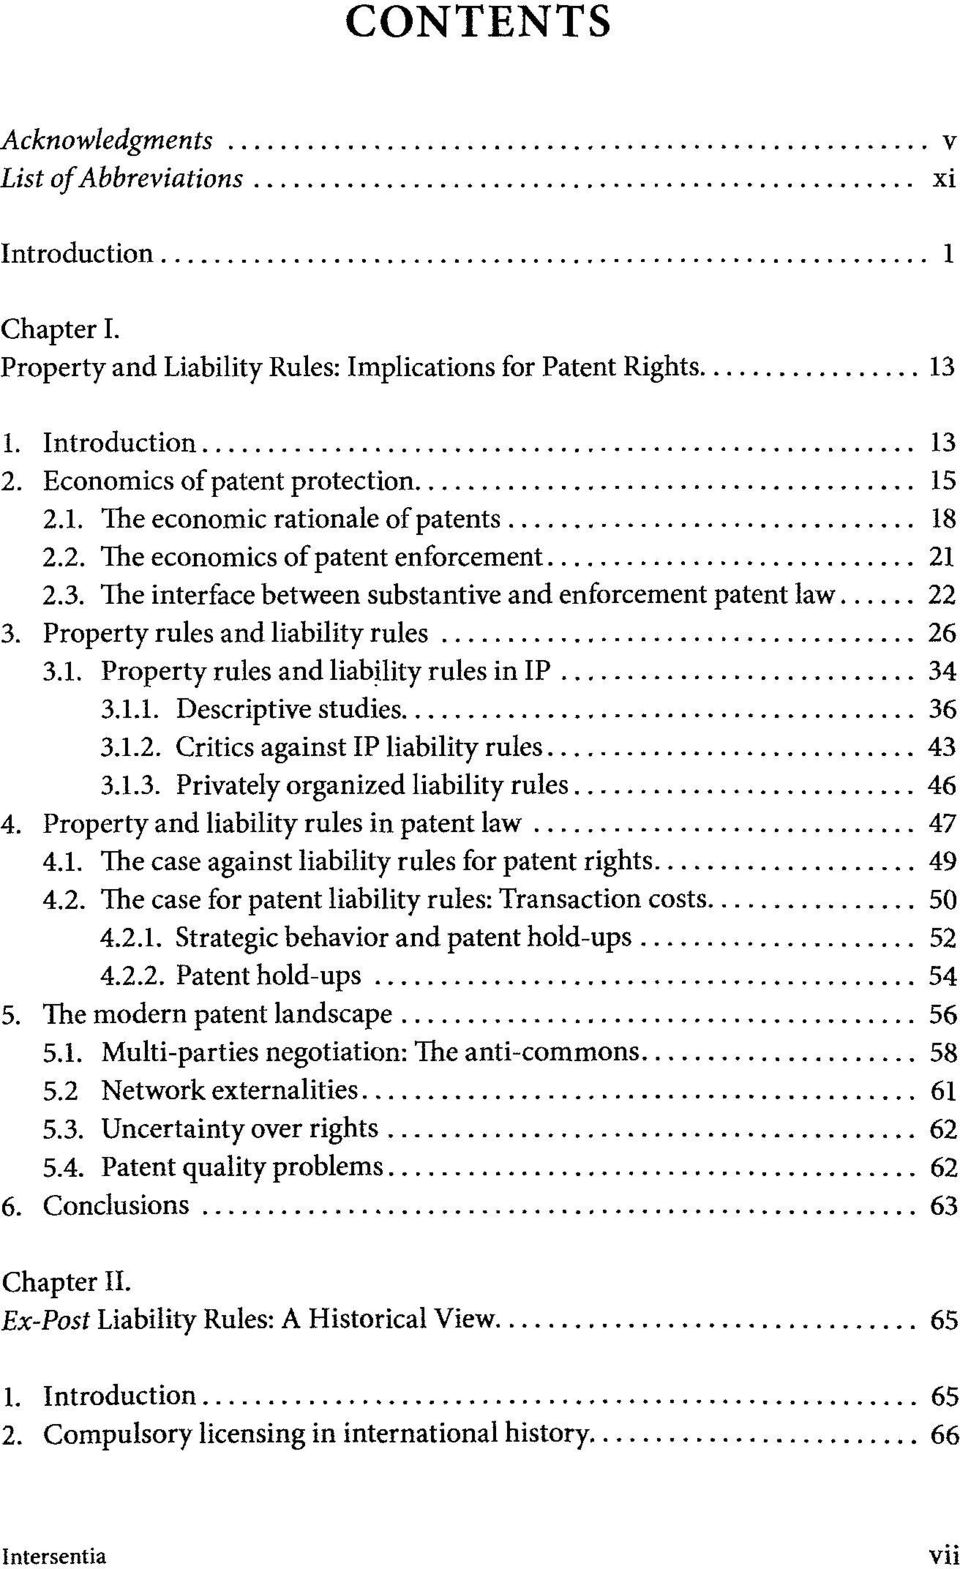 1.1. Descriptive studies 36 3.1.2. Critics against IP liability rules 43 3.1.3. Privately organized liability rules 46 4. Property and liability rules in patent law 47 4.1. The case against liability rules for patent rights 49 4.